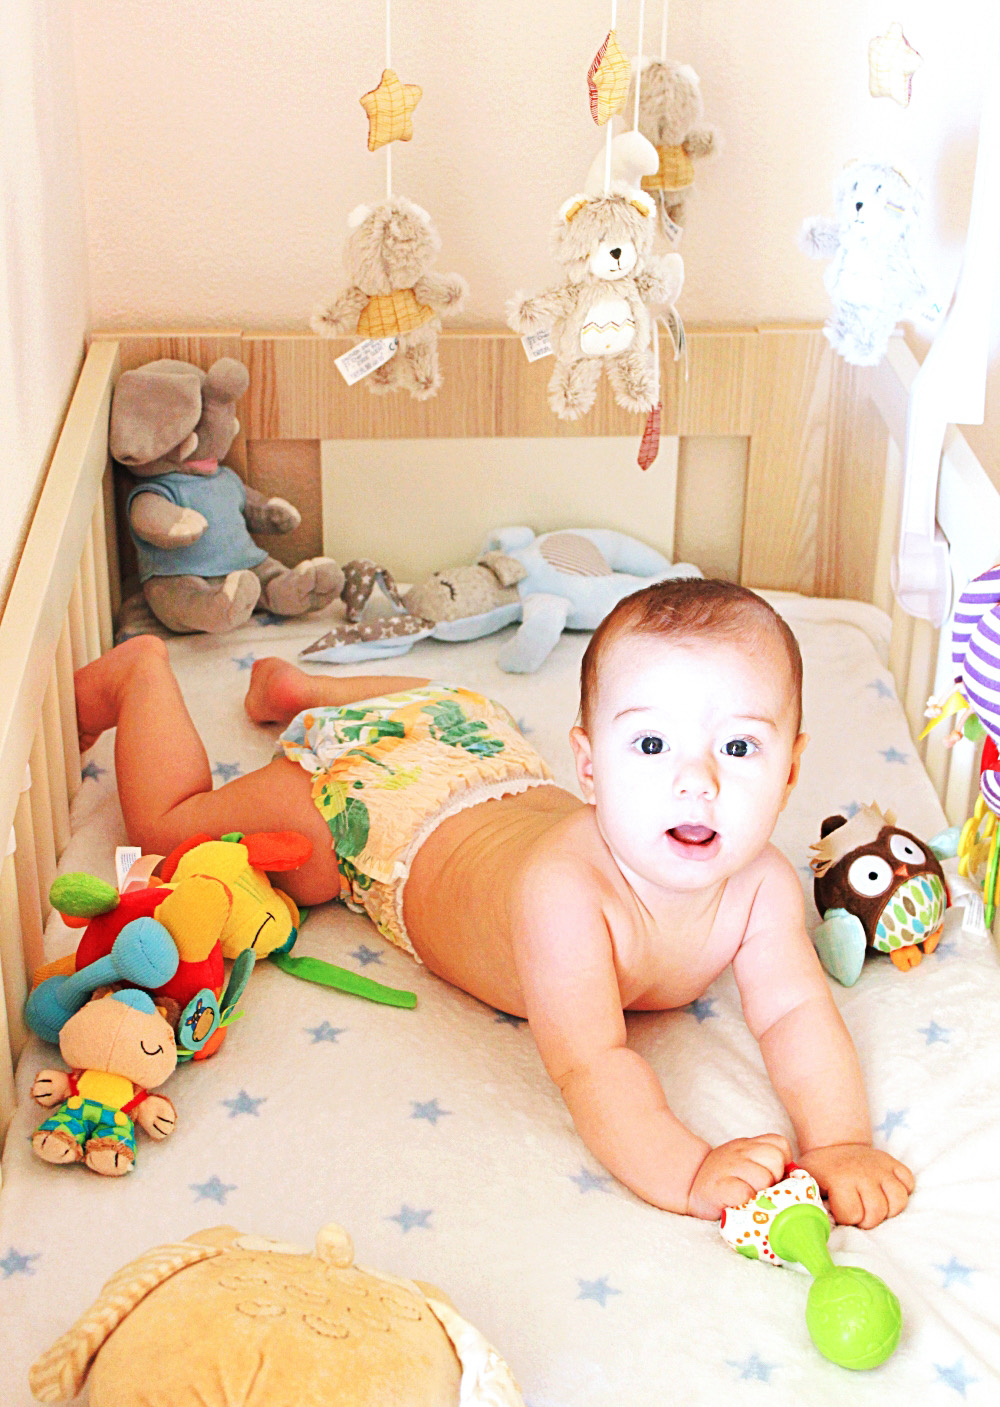 how many diapers needs a 3-6 months old baby; koliko pelena treba bebi